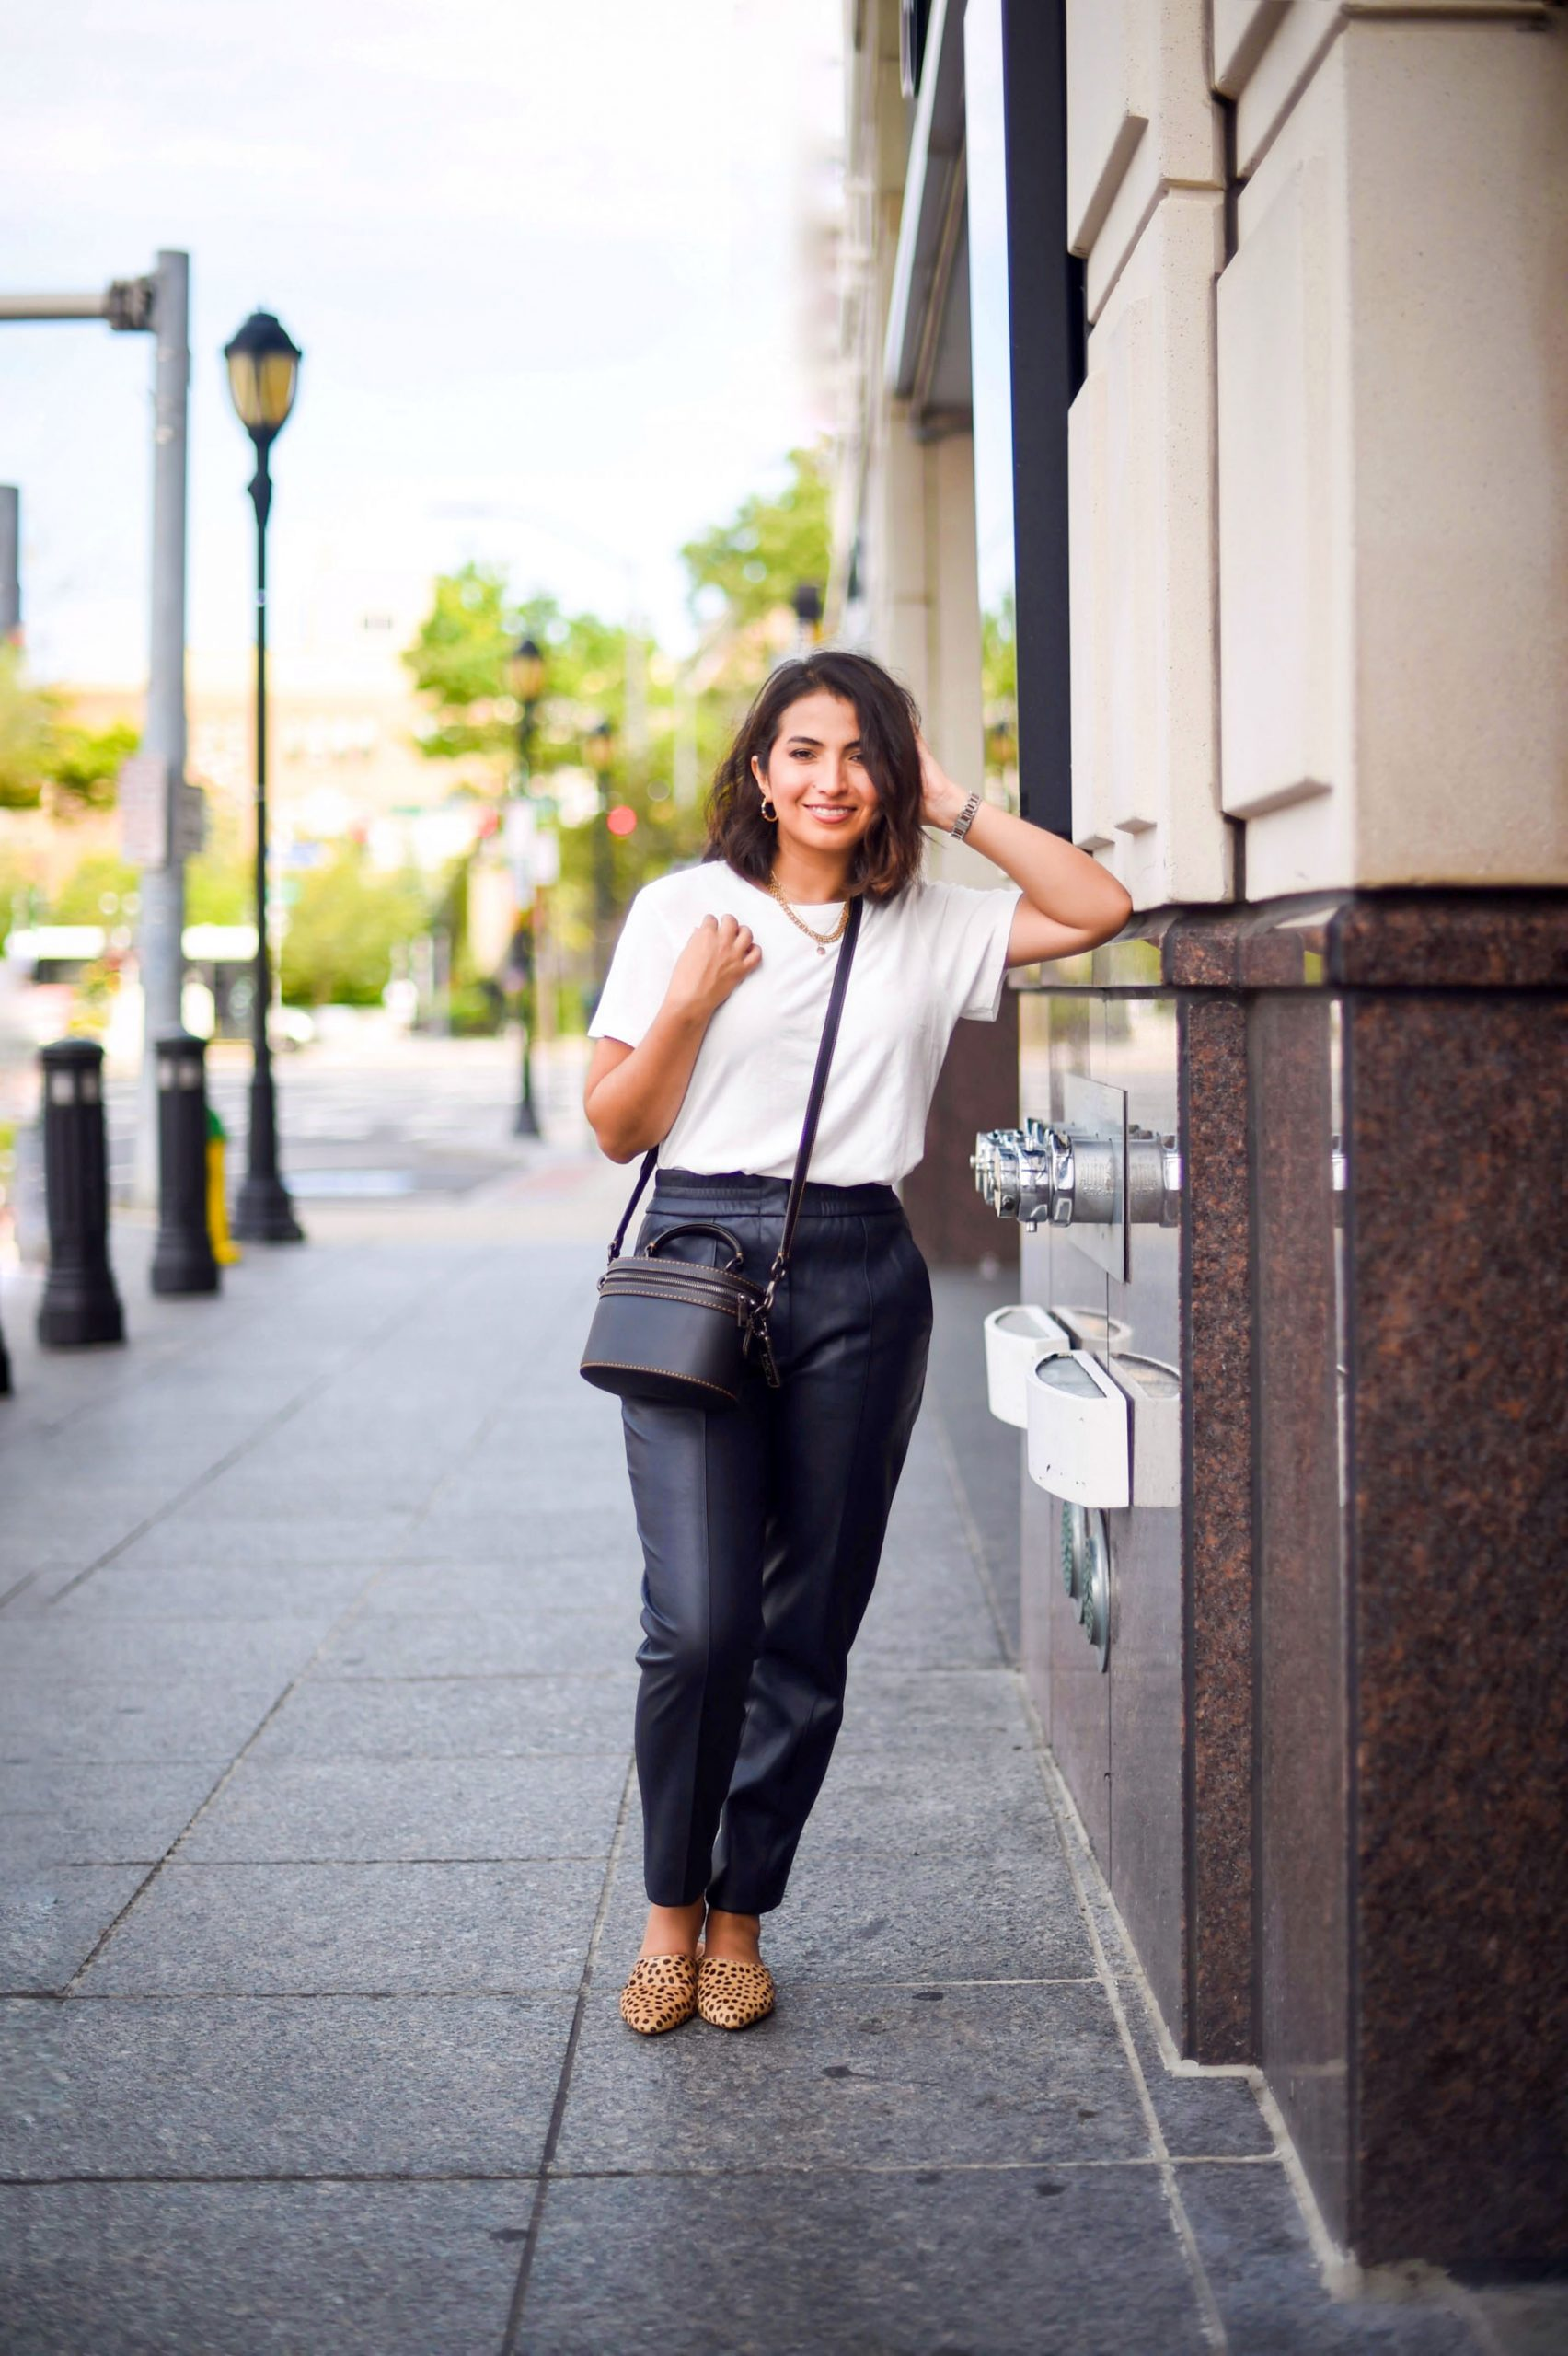 Tired of sweatpants? We swear by faux leather pants with an elastic waistband for a casual outfit. Soft, luxe & comfy. Instant badass feeling.